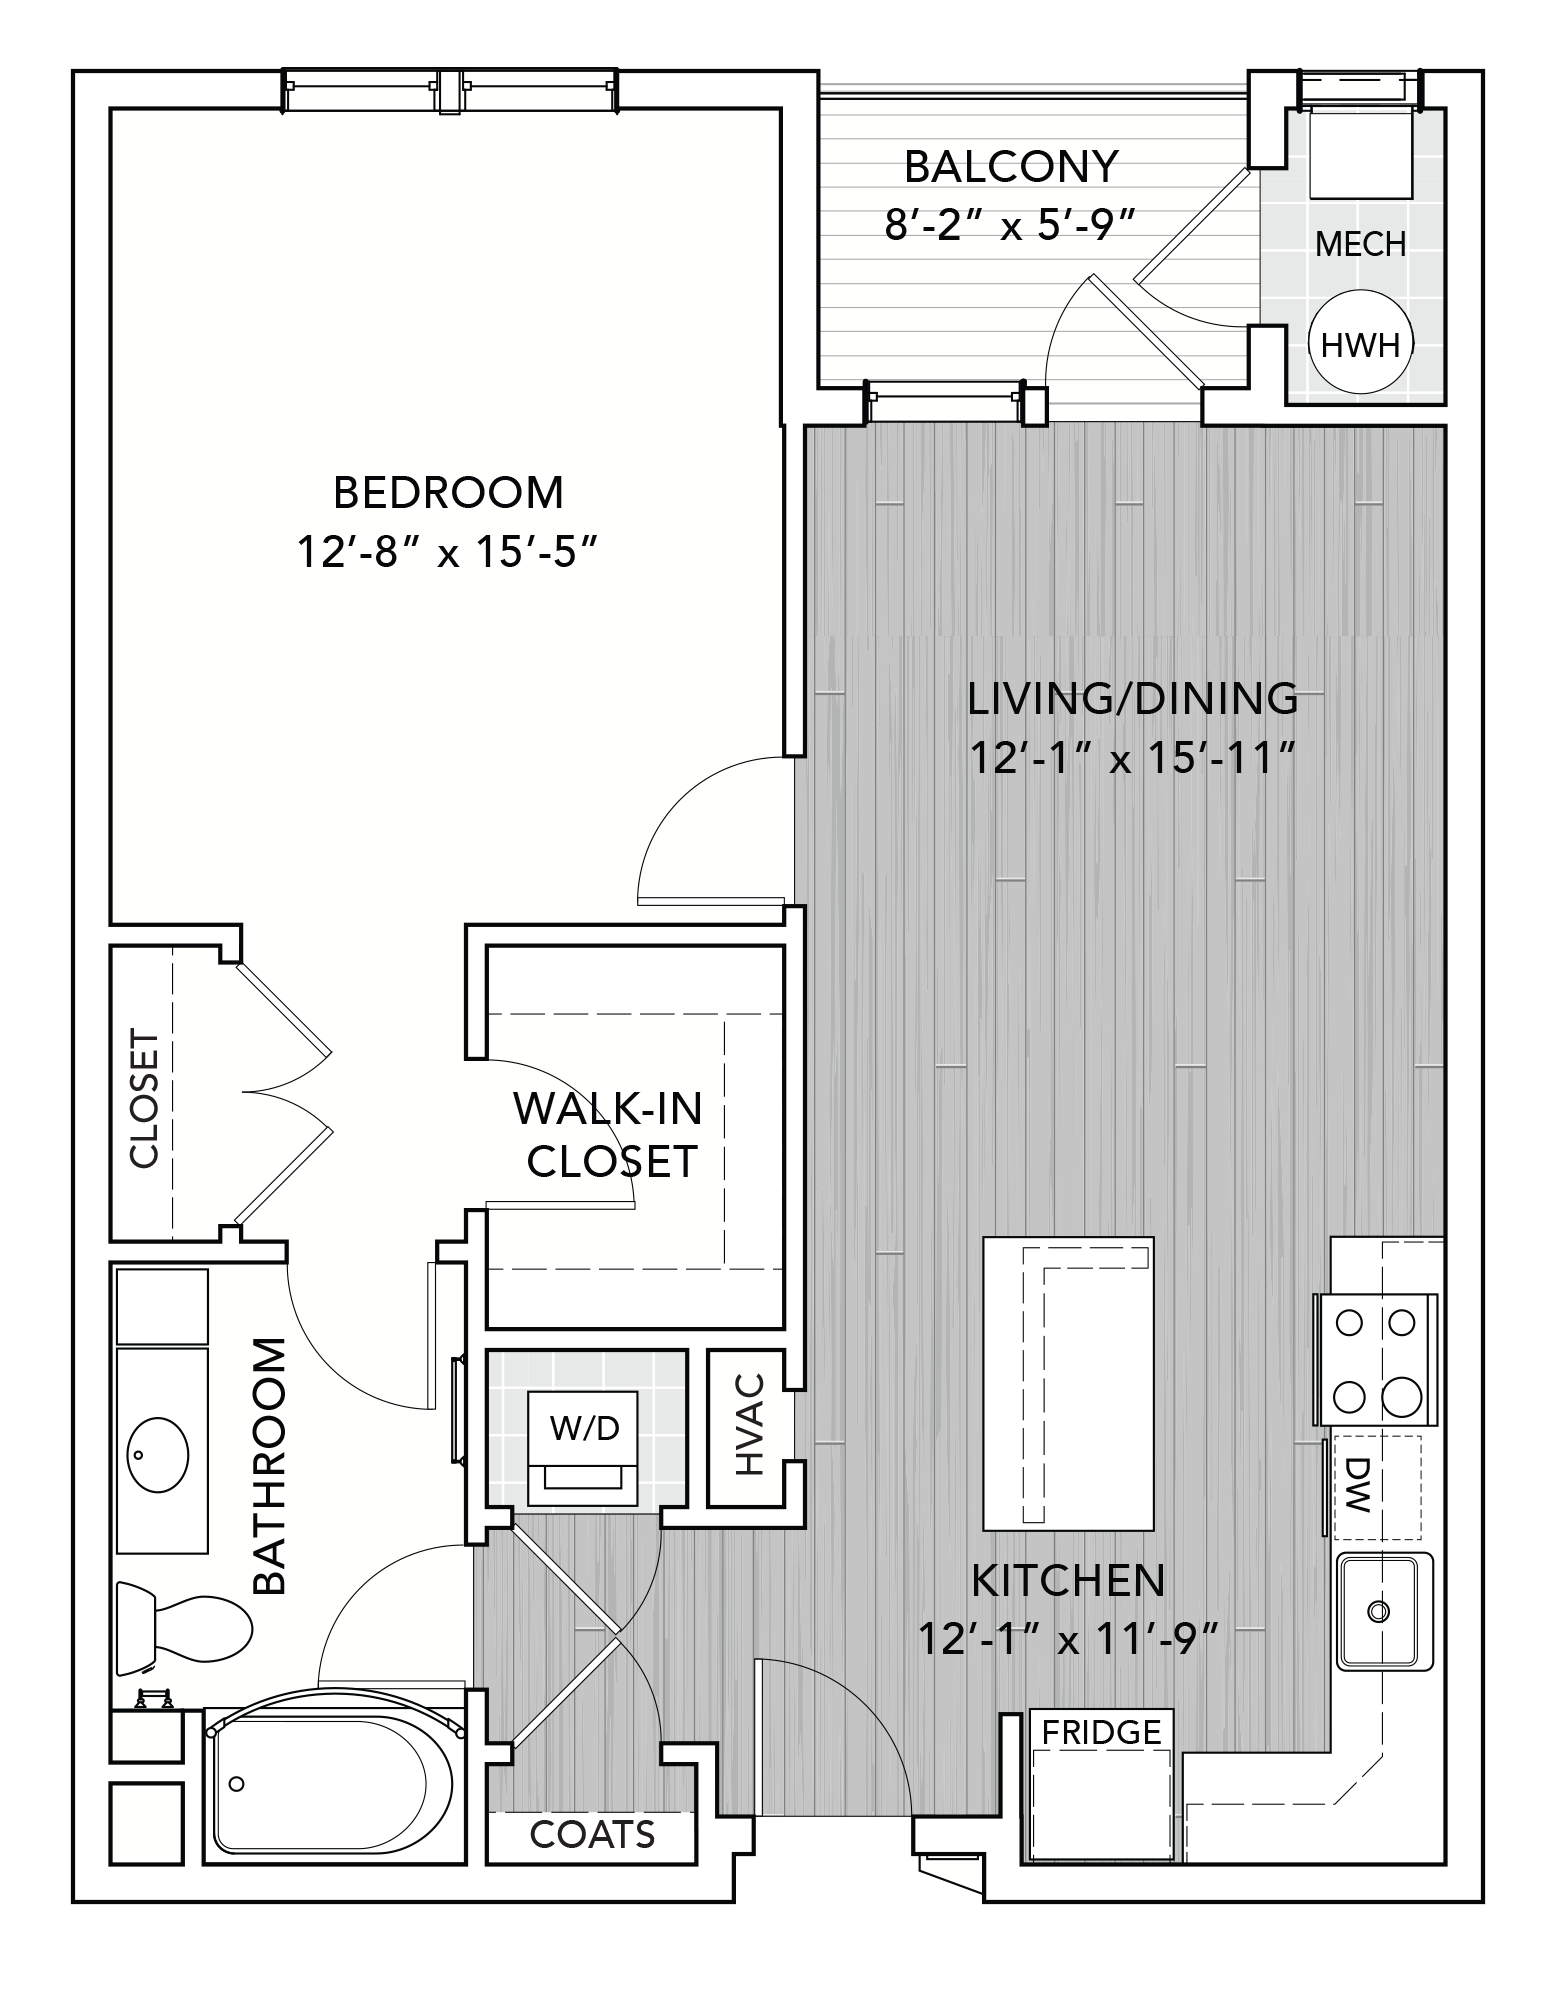 P0655013 parksquare a7 851 2 floorplan